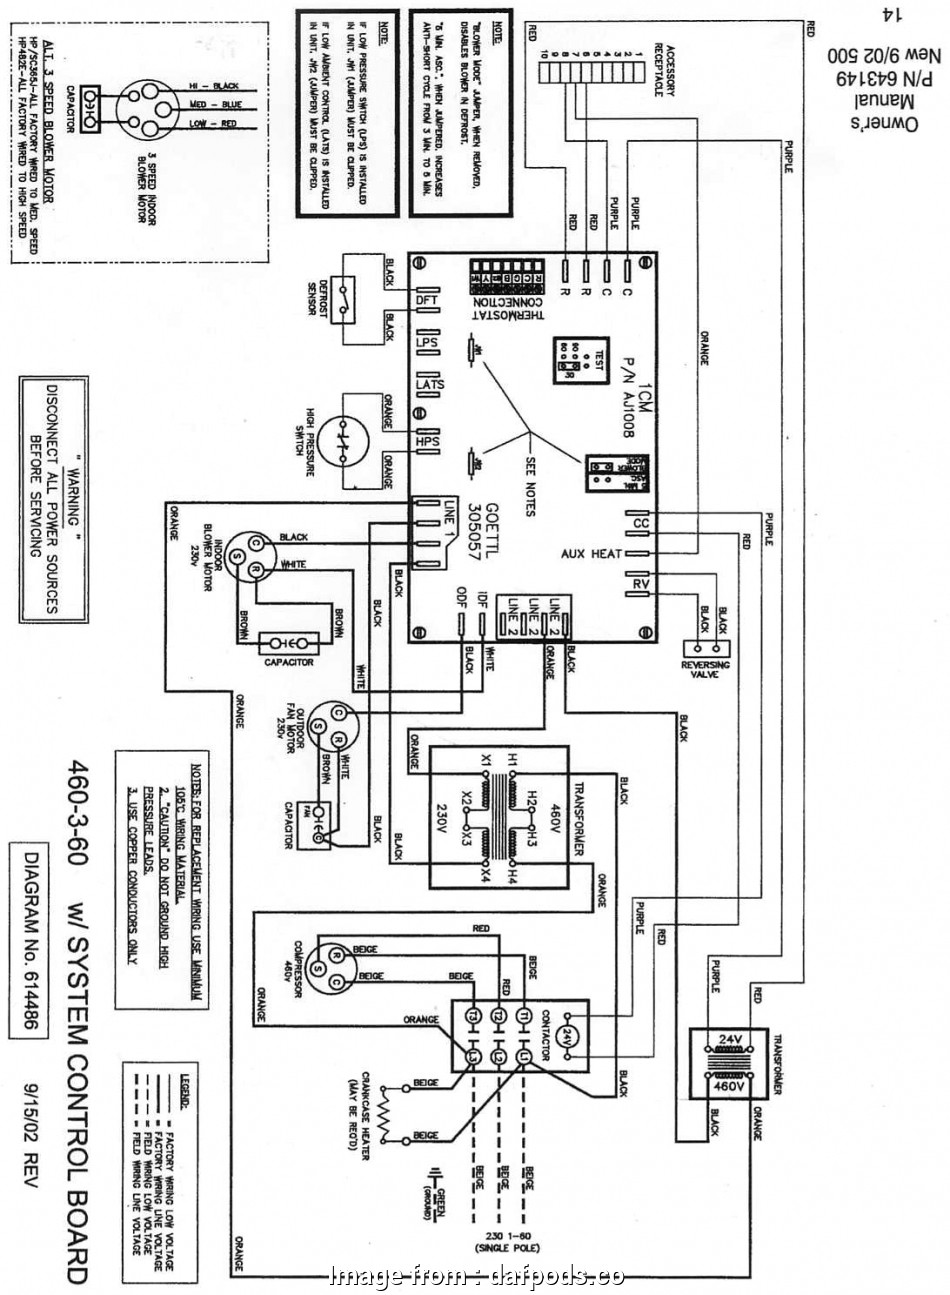 Goodman Package Unit Thermostat Wiring Diagram Creative